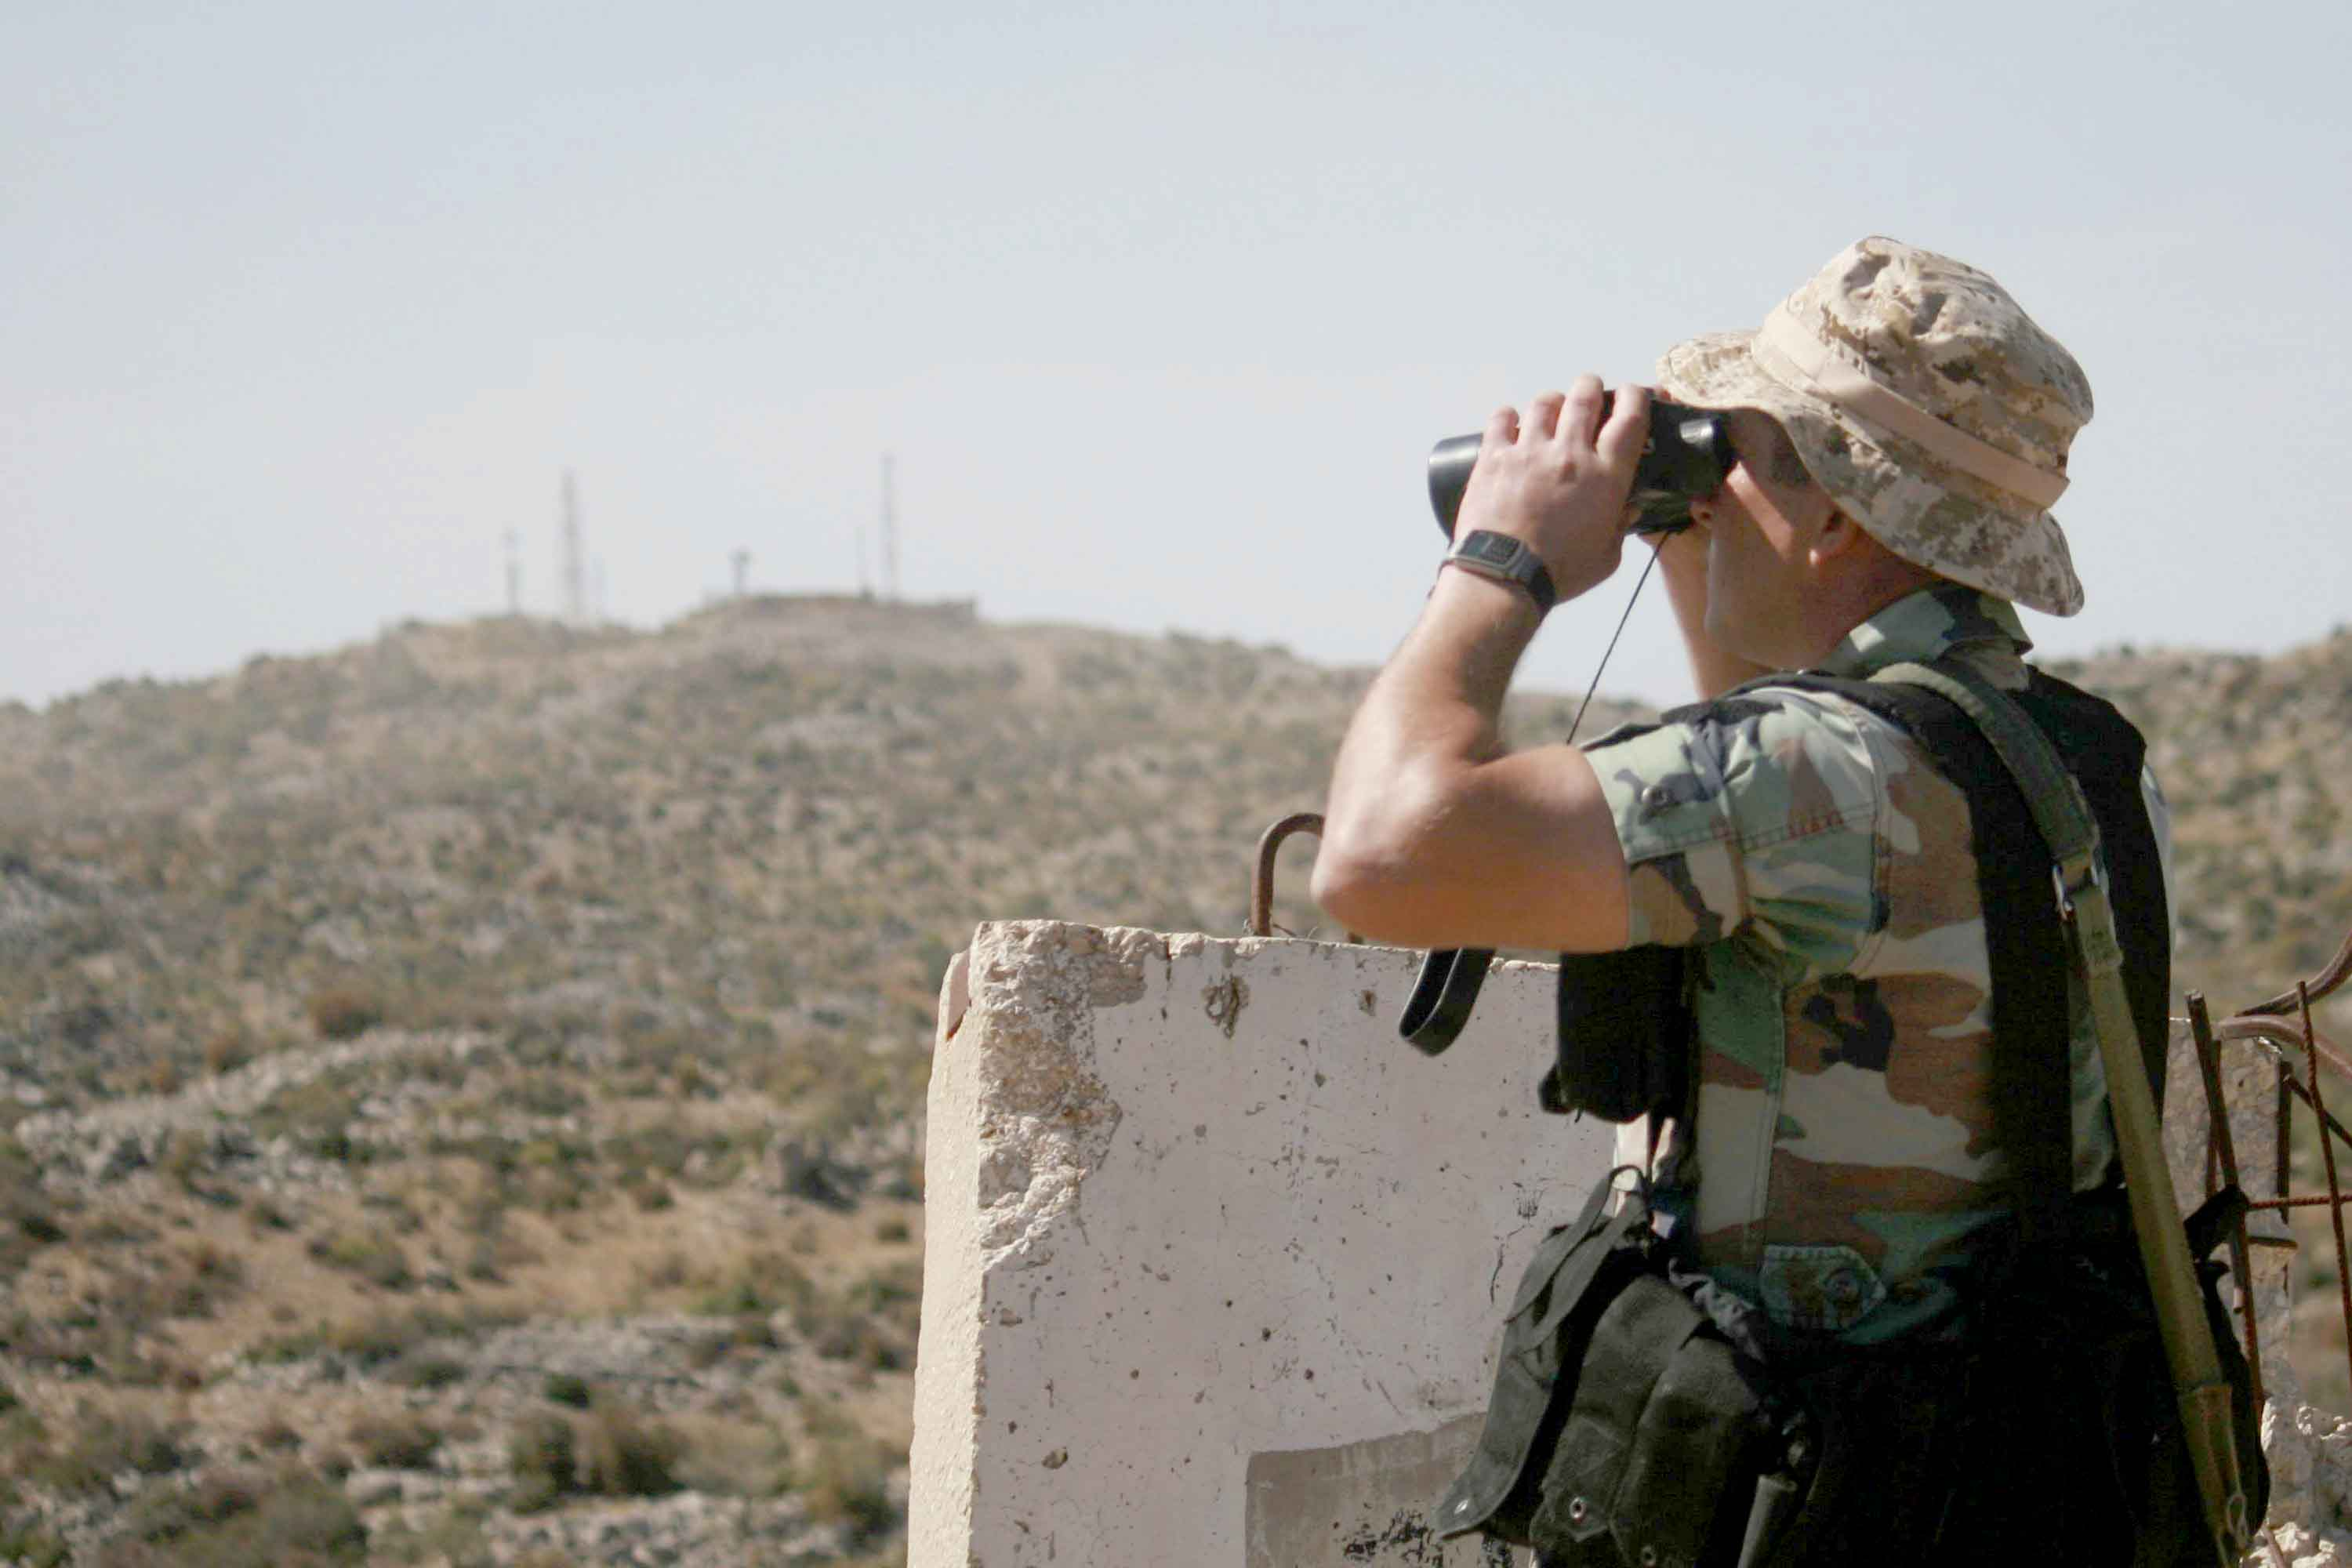 A Lebanese soldier uses a pair of binoculars in the Shebaa area of southern Lebanon as he looks towards a position near the border with Israel. (Reuters)